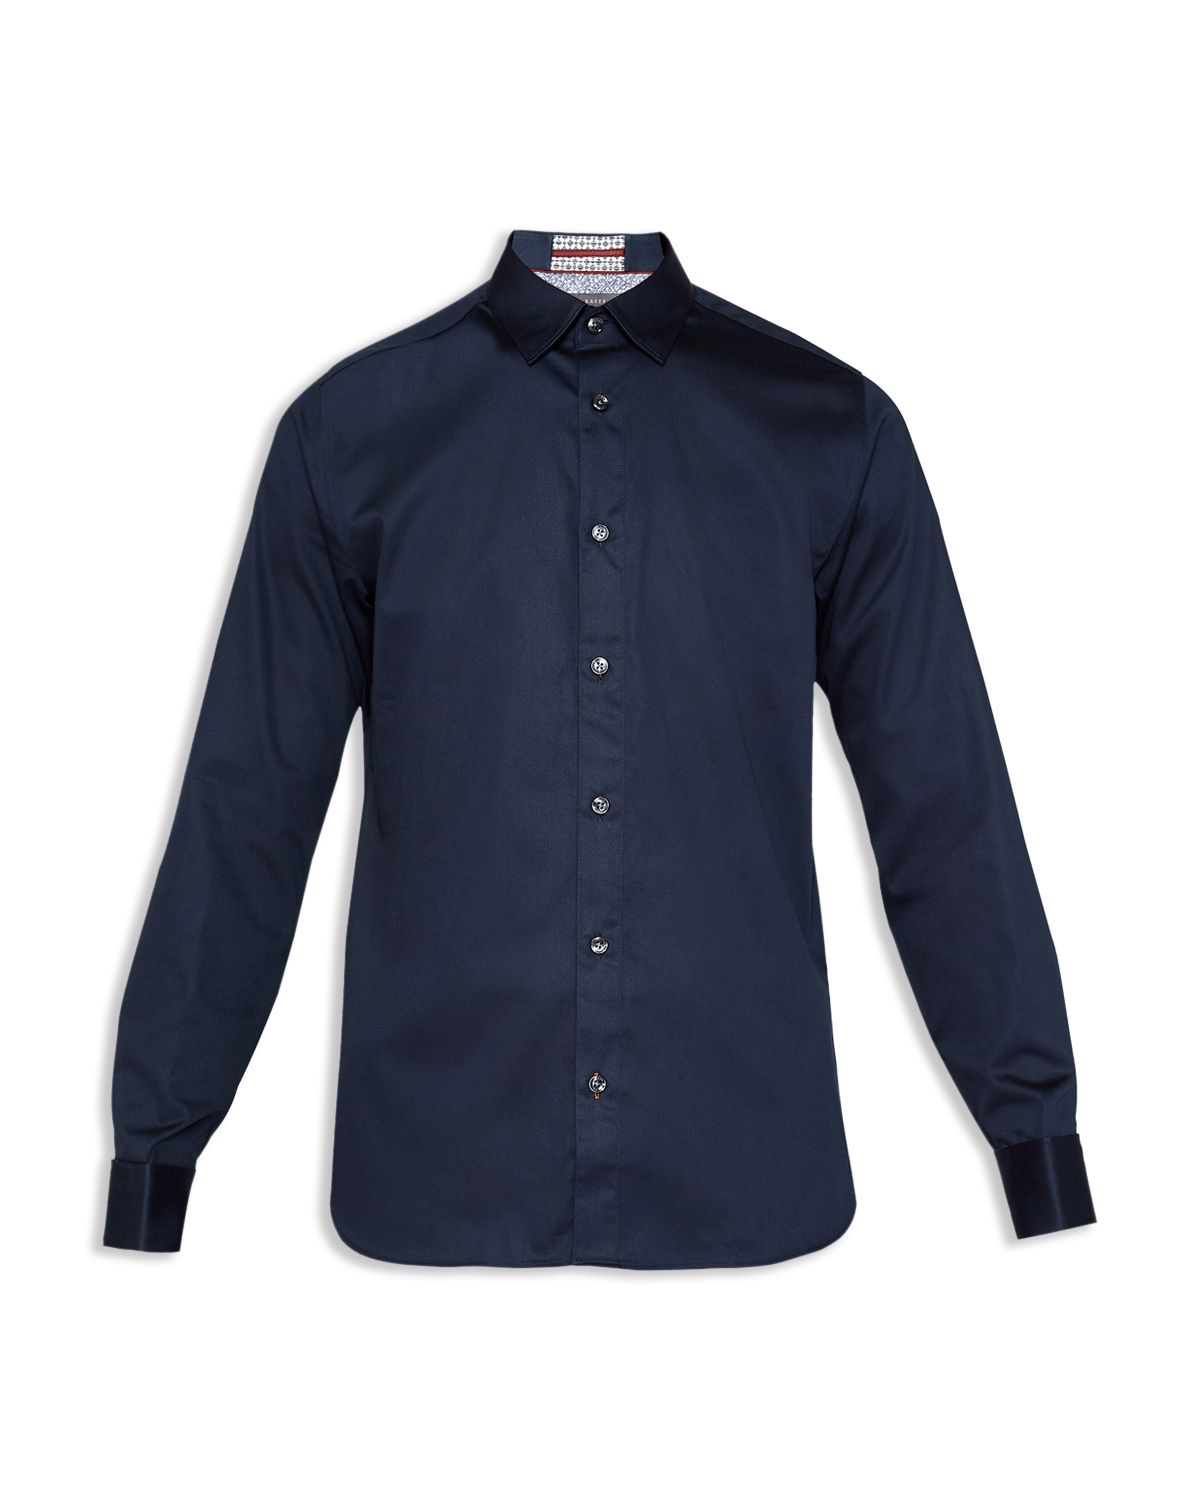 Romeio Satin Stretch Phormal Regular Button Down Shirt by Ted Baker